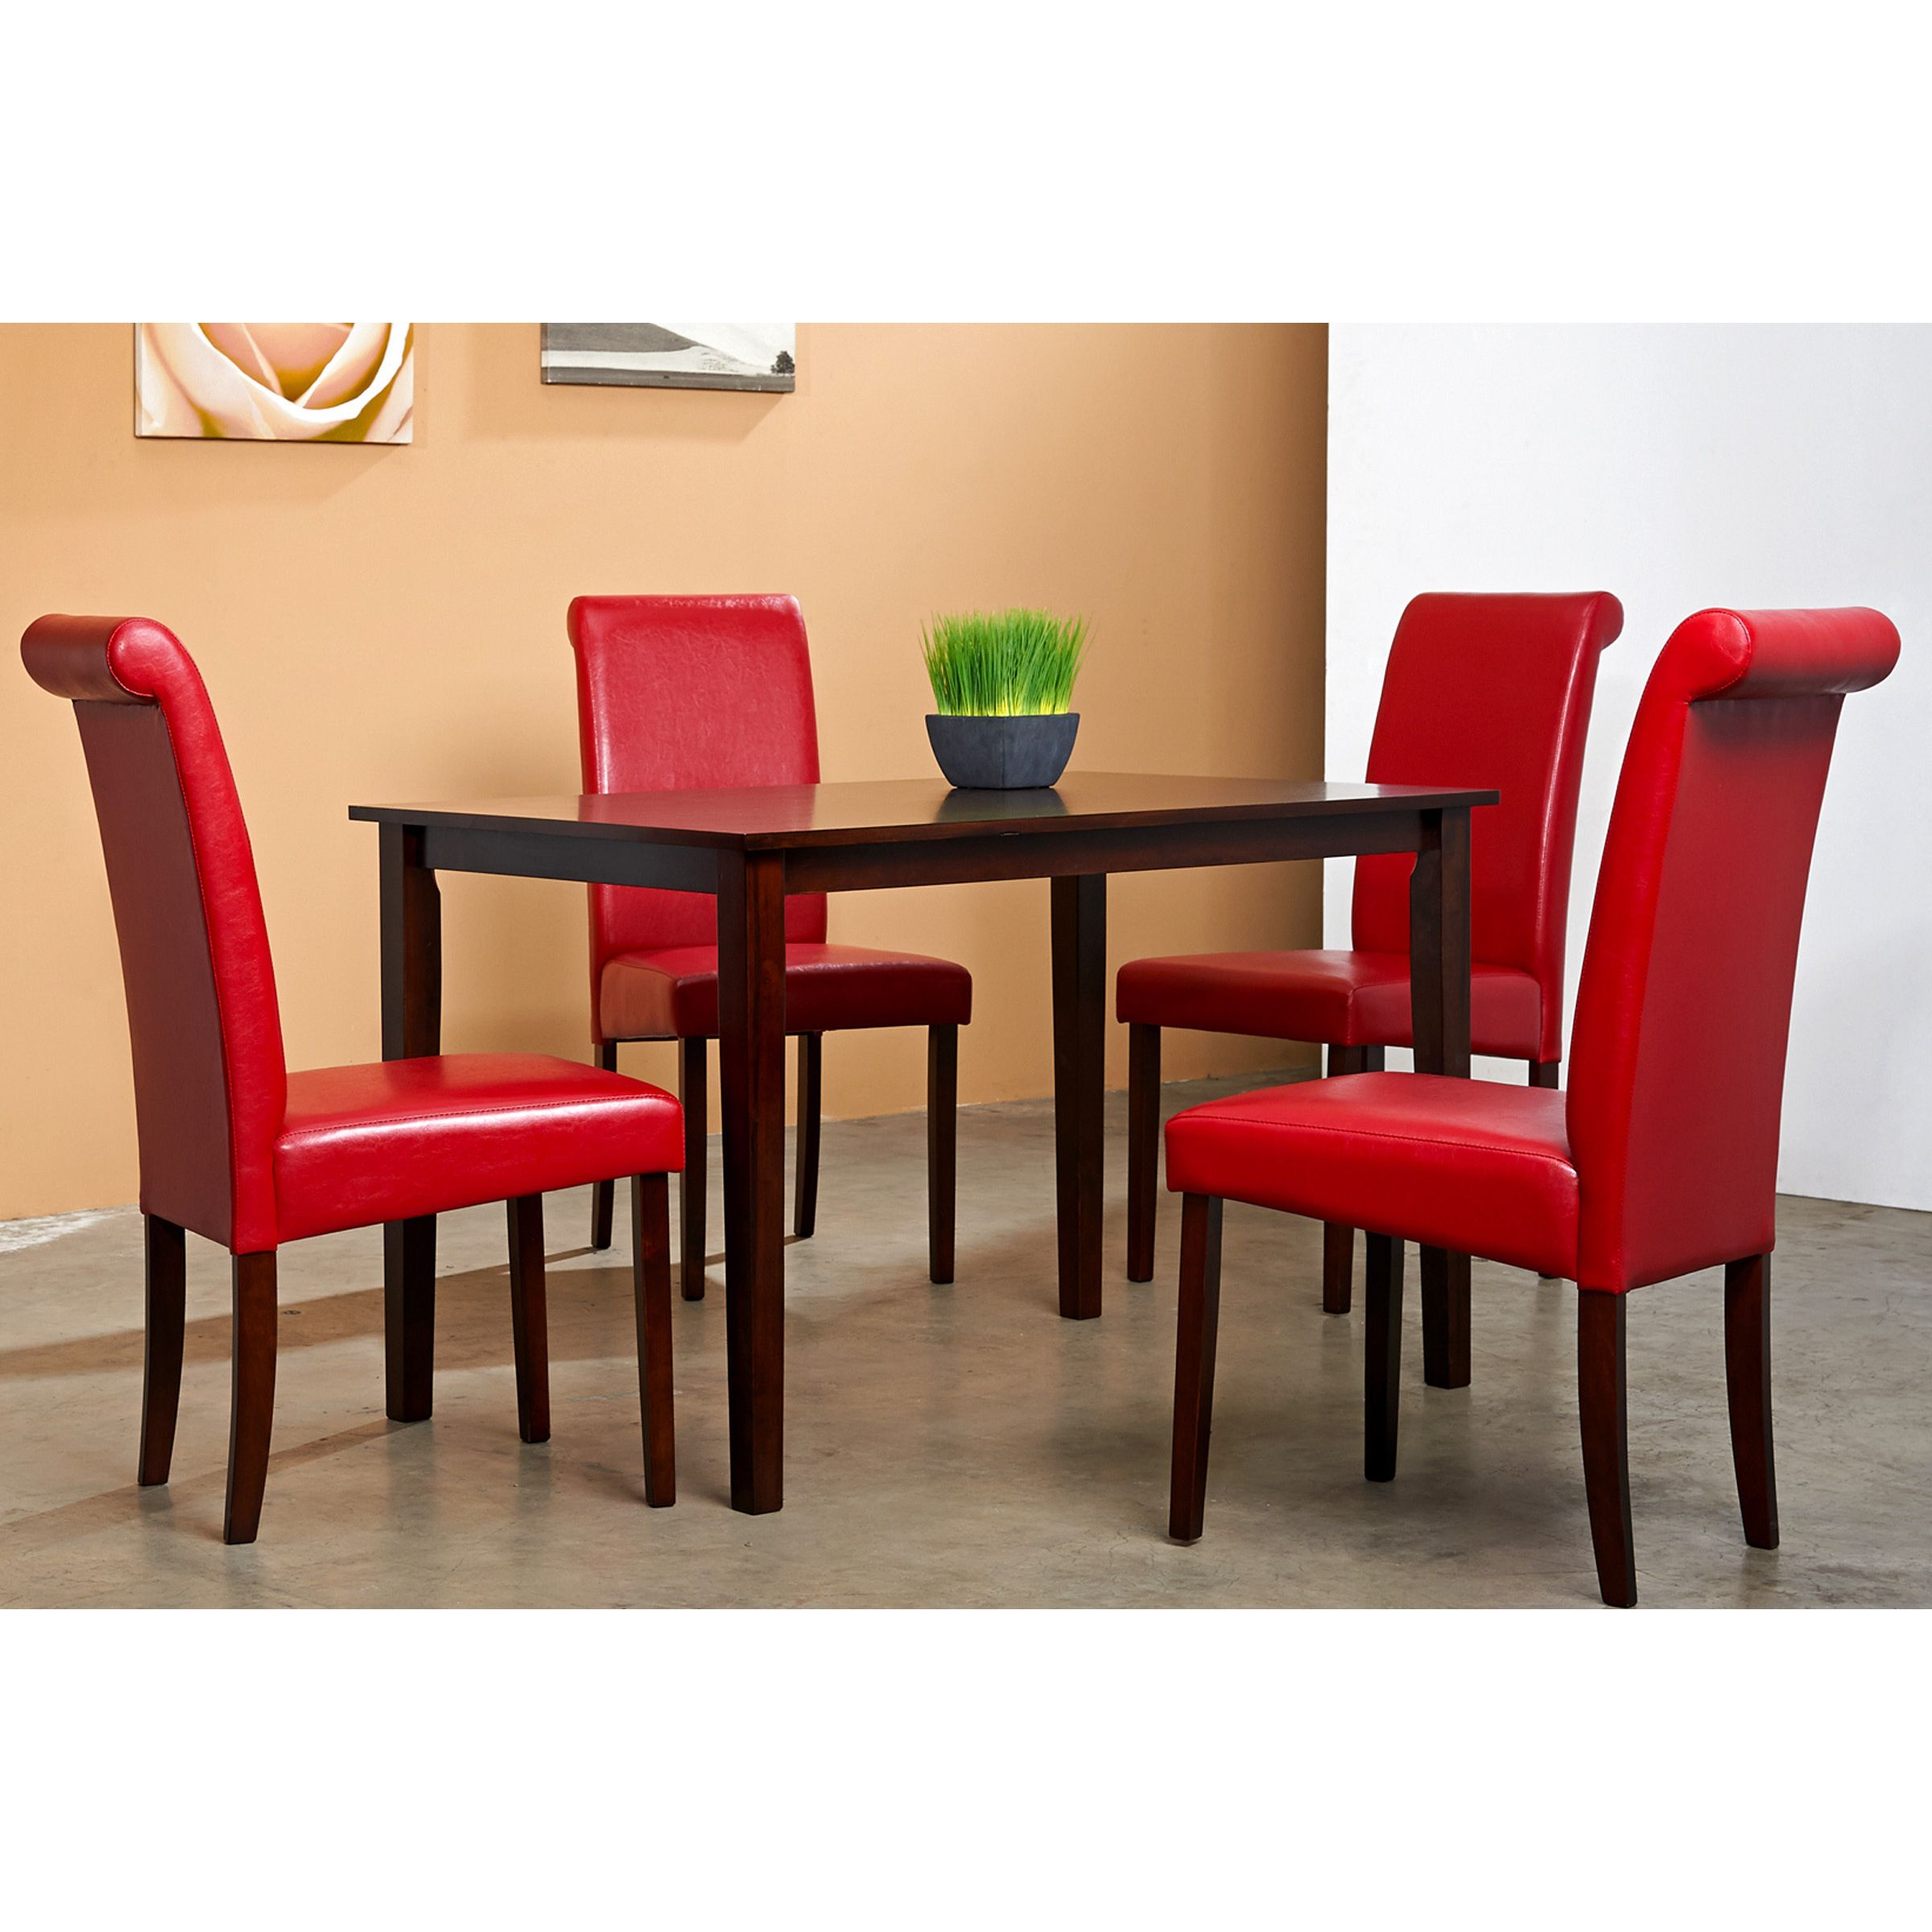 Elegant And Sophisticated, This Furniture Set From Warehouse Of Tiffany  Features A Striking Red Finish